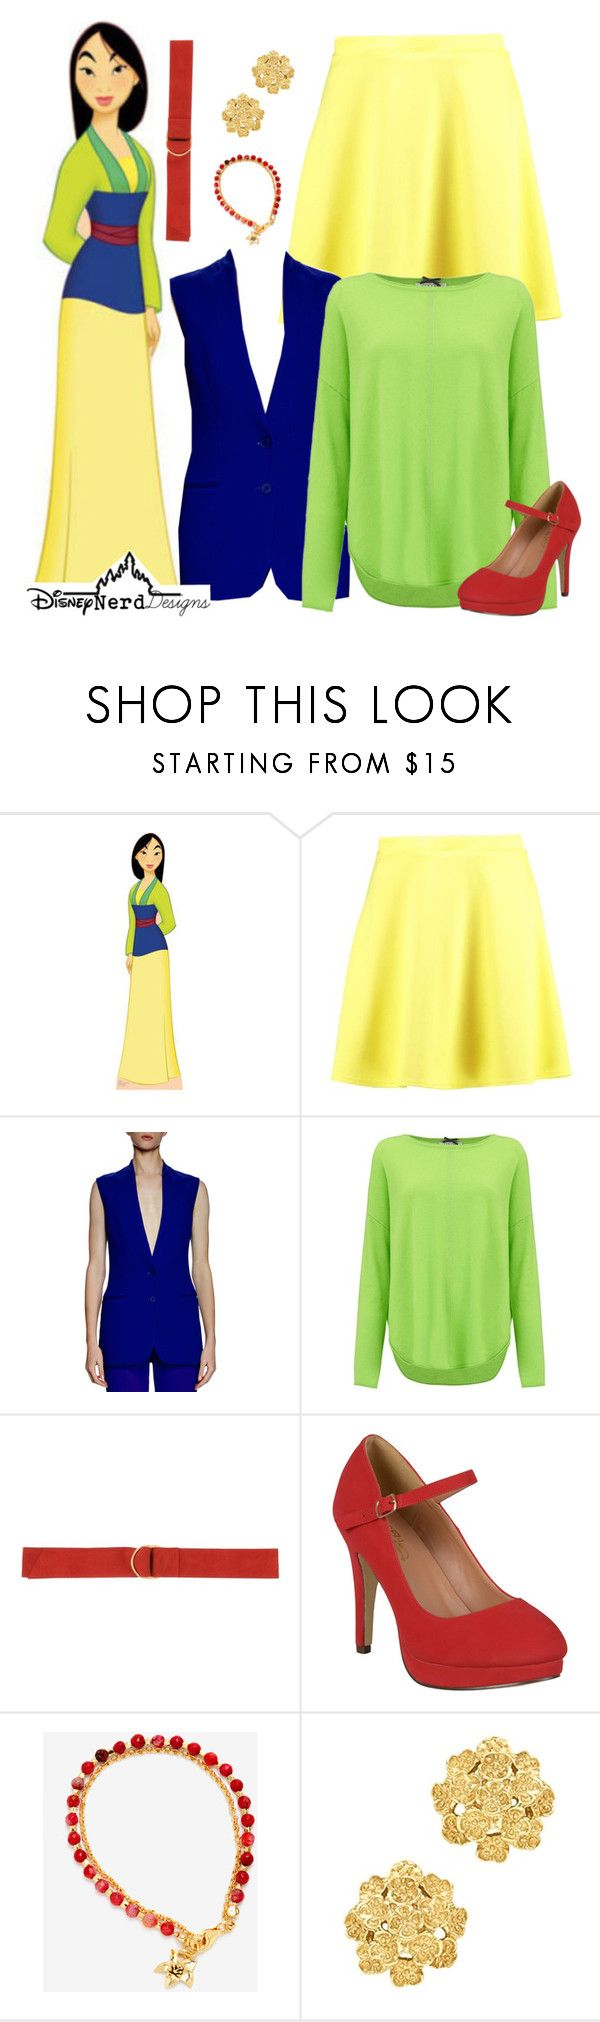 """""""Why Is My Reflection Someone I Don't Know?"""" by disney-nerd-designs ❤ liked on Polyvore featuring Boohoo, STELLA McCARTNEY, Cocoa Cashmere, Carla G., Journee Collection, London Road, Disney, disney, disneybound and mulan"""